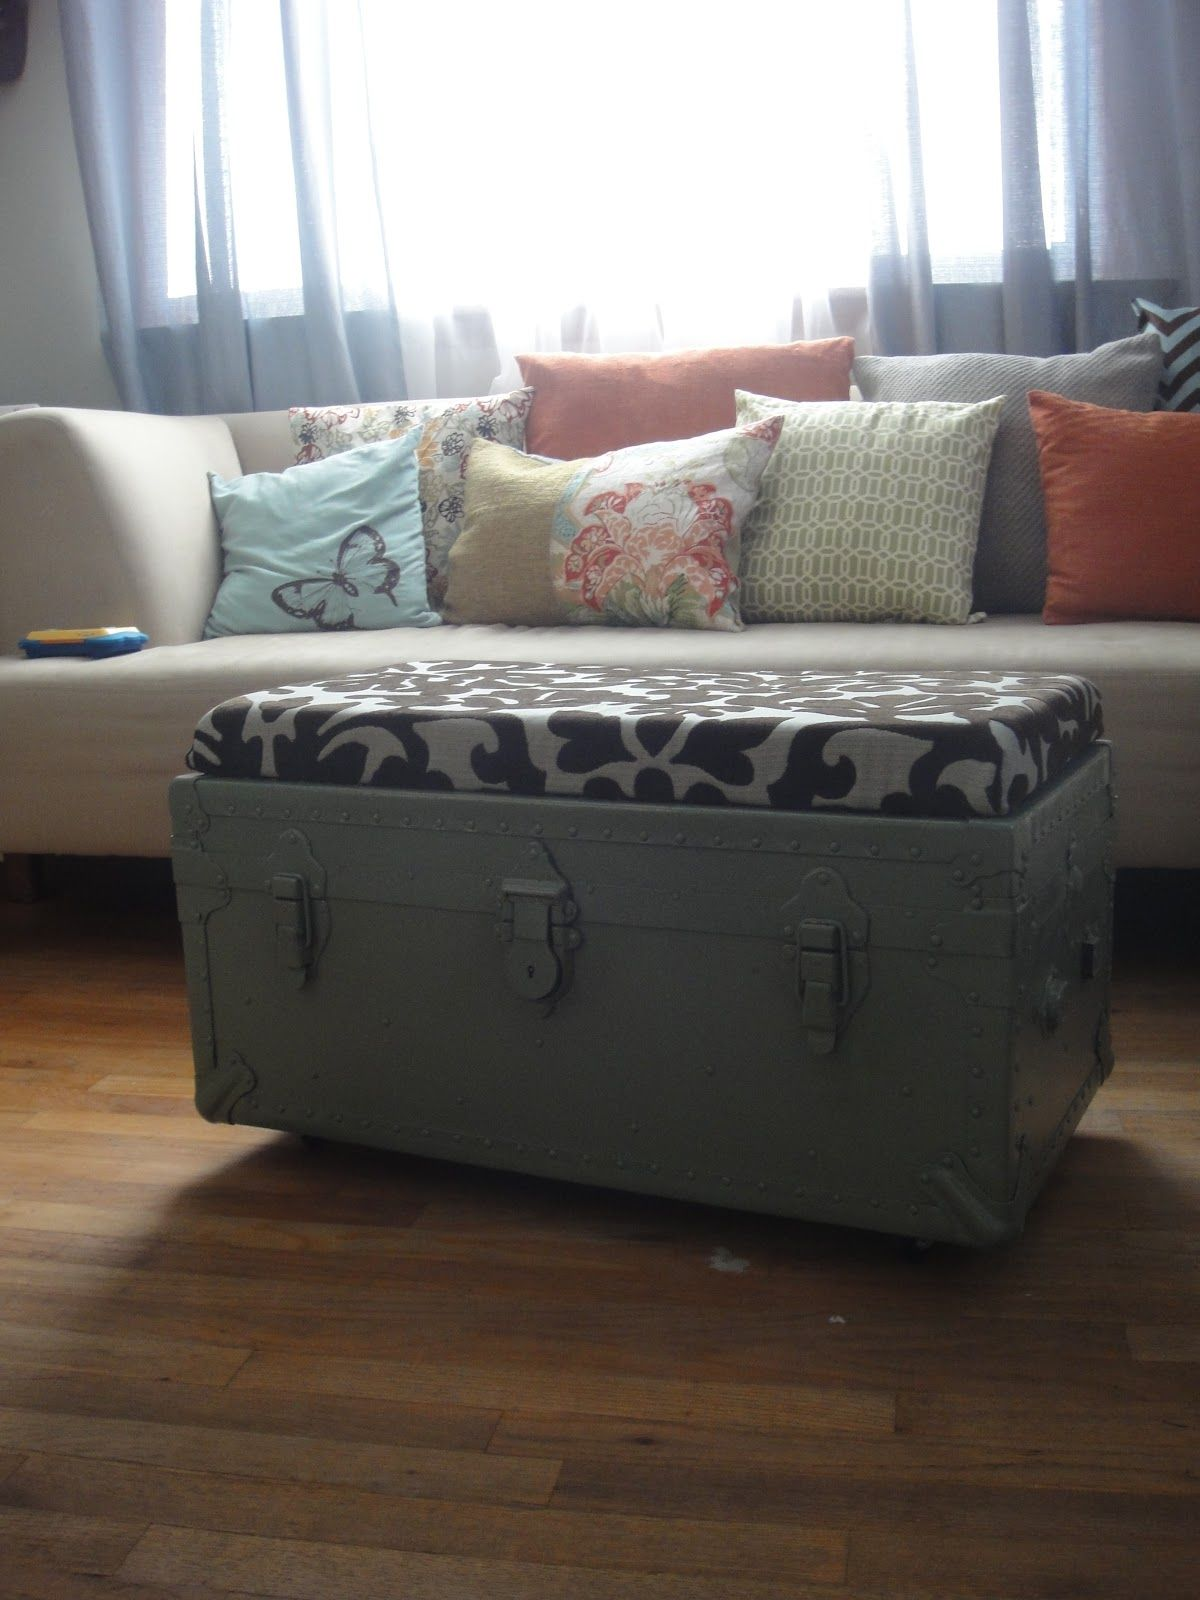 Swell Cushion On Top Of Trunk Makes For Nice Small Bench Vintage Caraccident5 Cool Chair Designs And Ideas Caraccident5Info